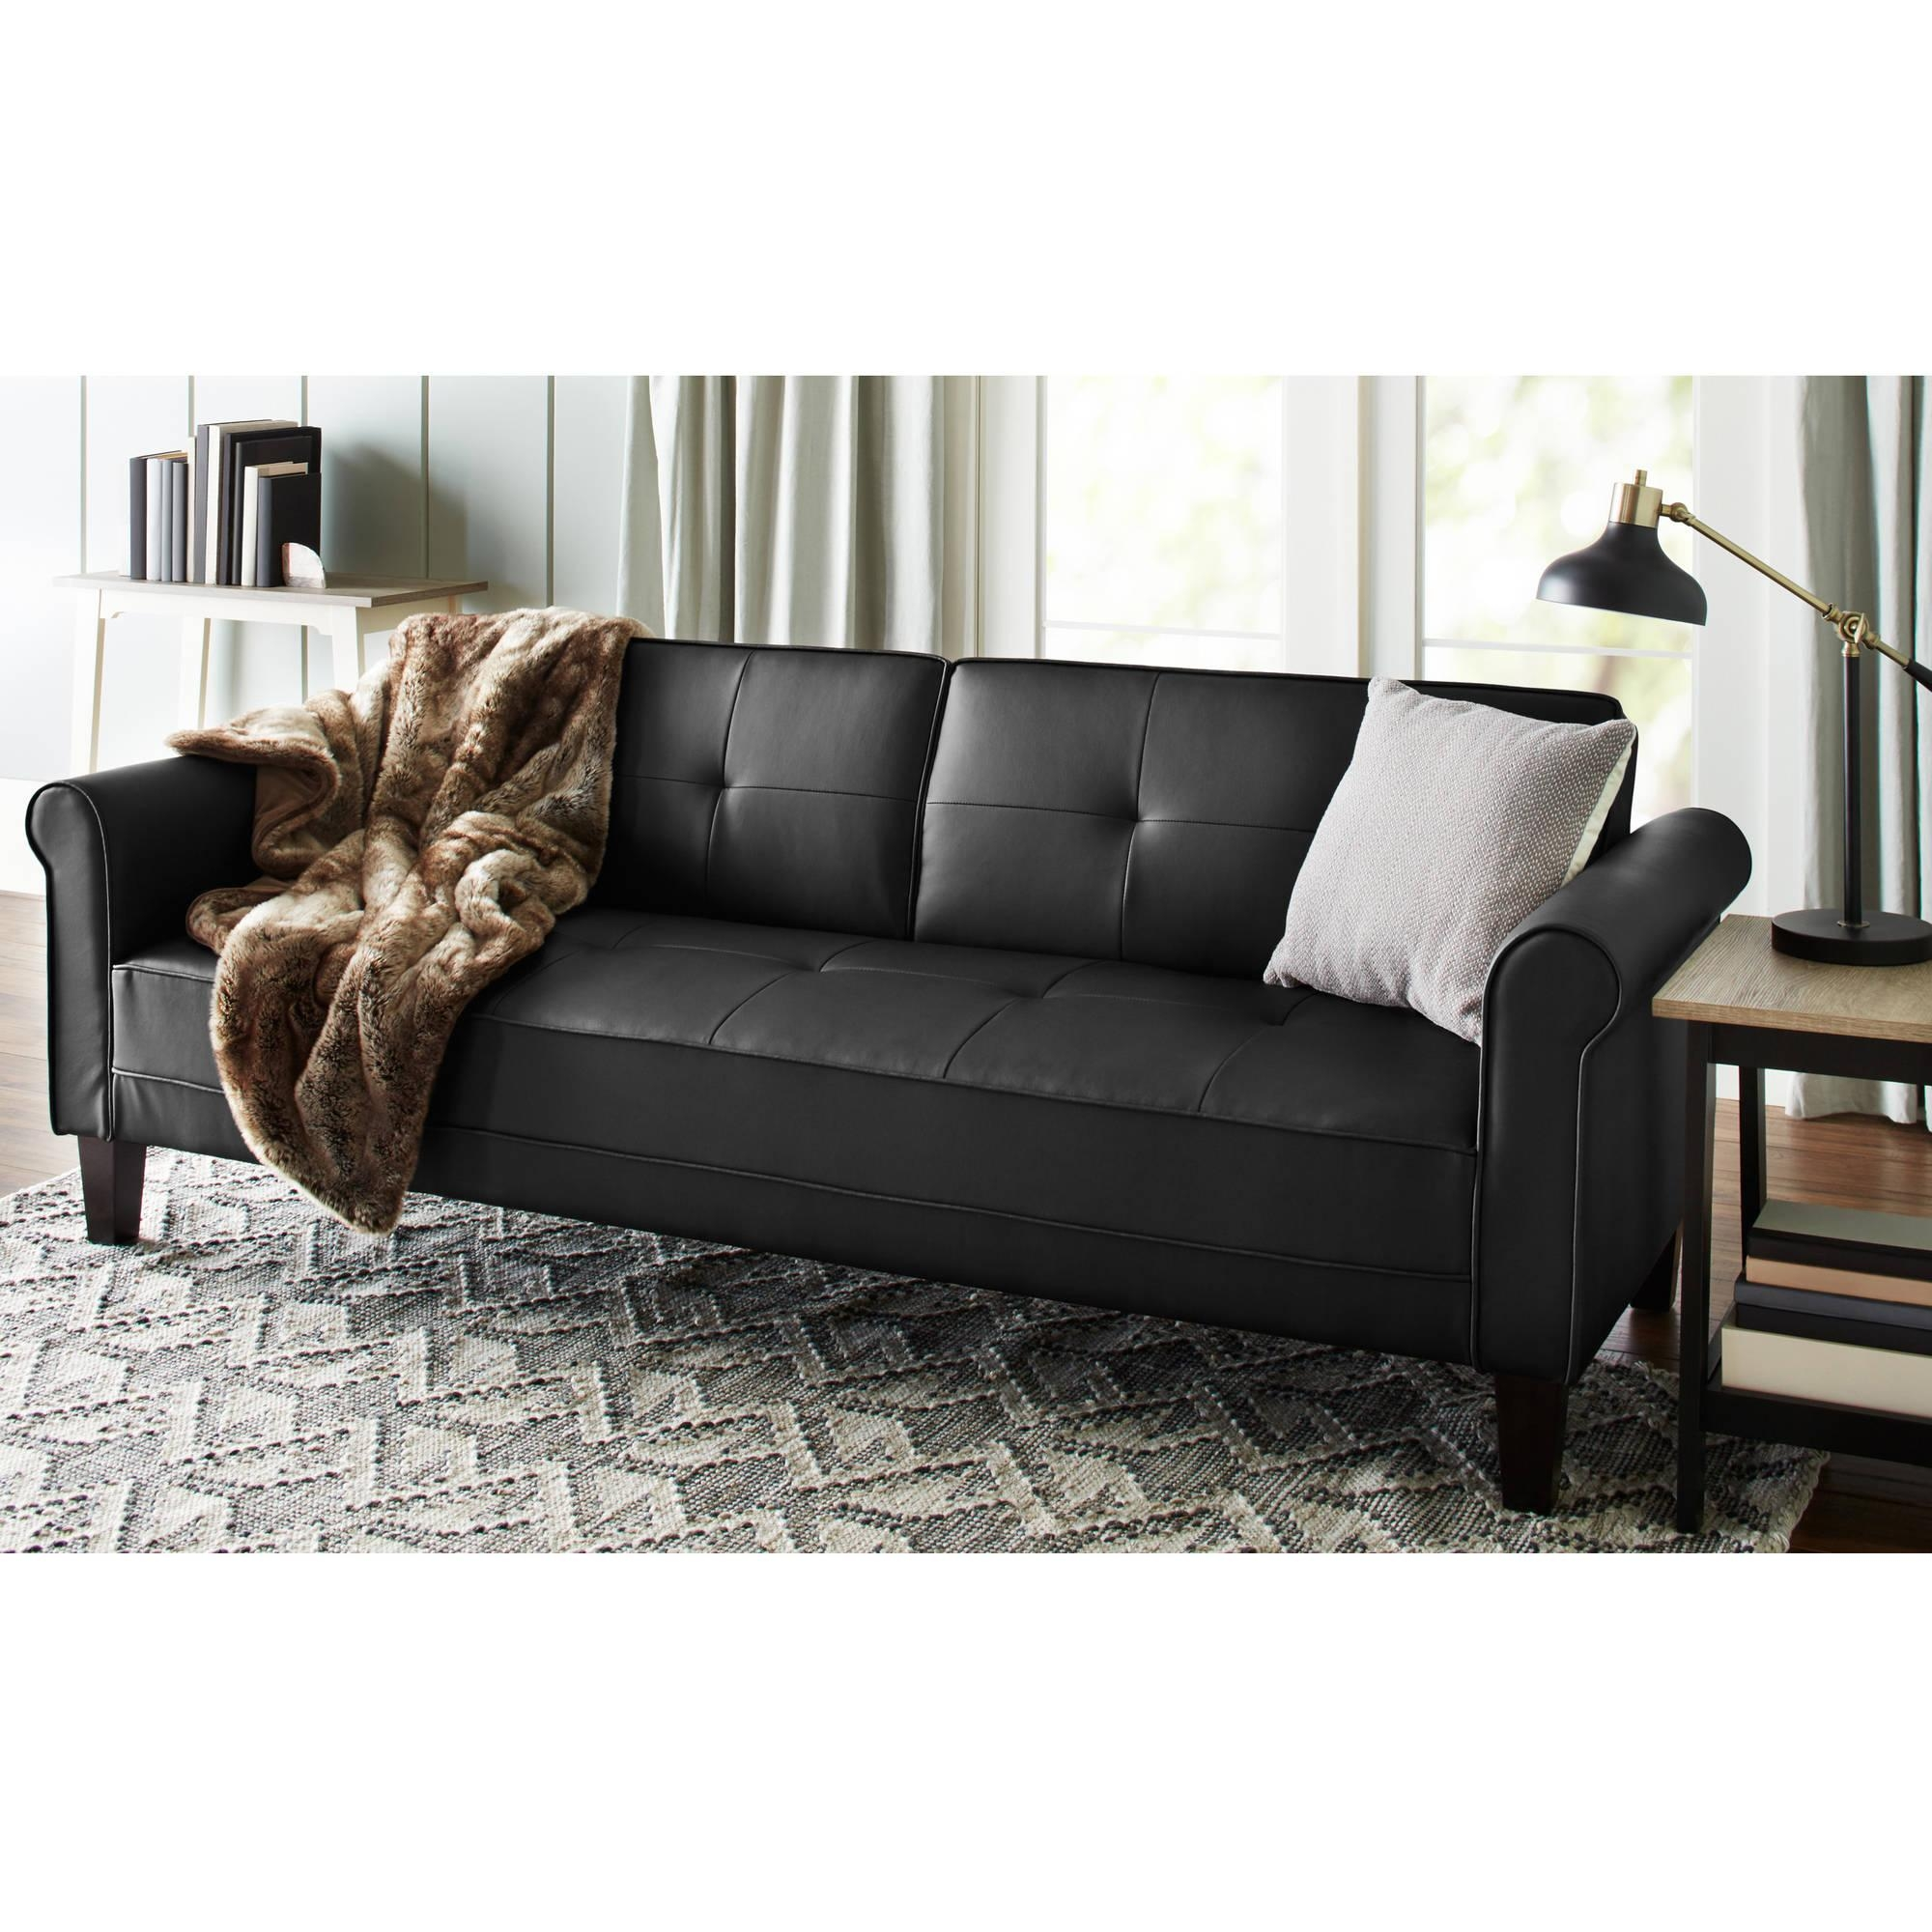 Furniture: Walmart Sofa Bed | Inflatable Furniture Walmart | Blow With Sofa Bed Chairs (View 18 of 20)